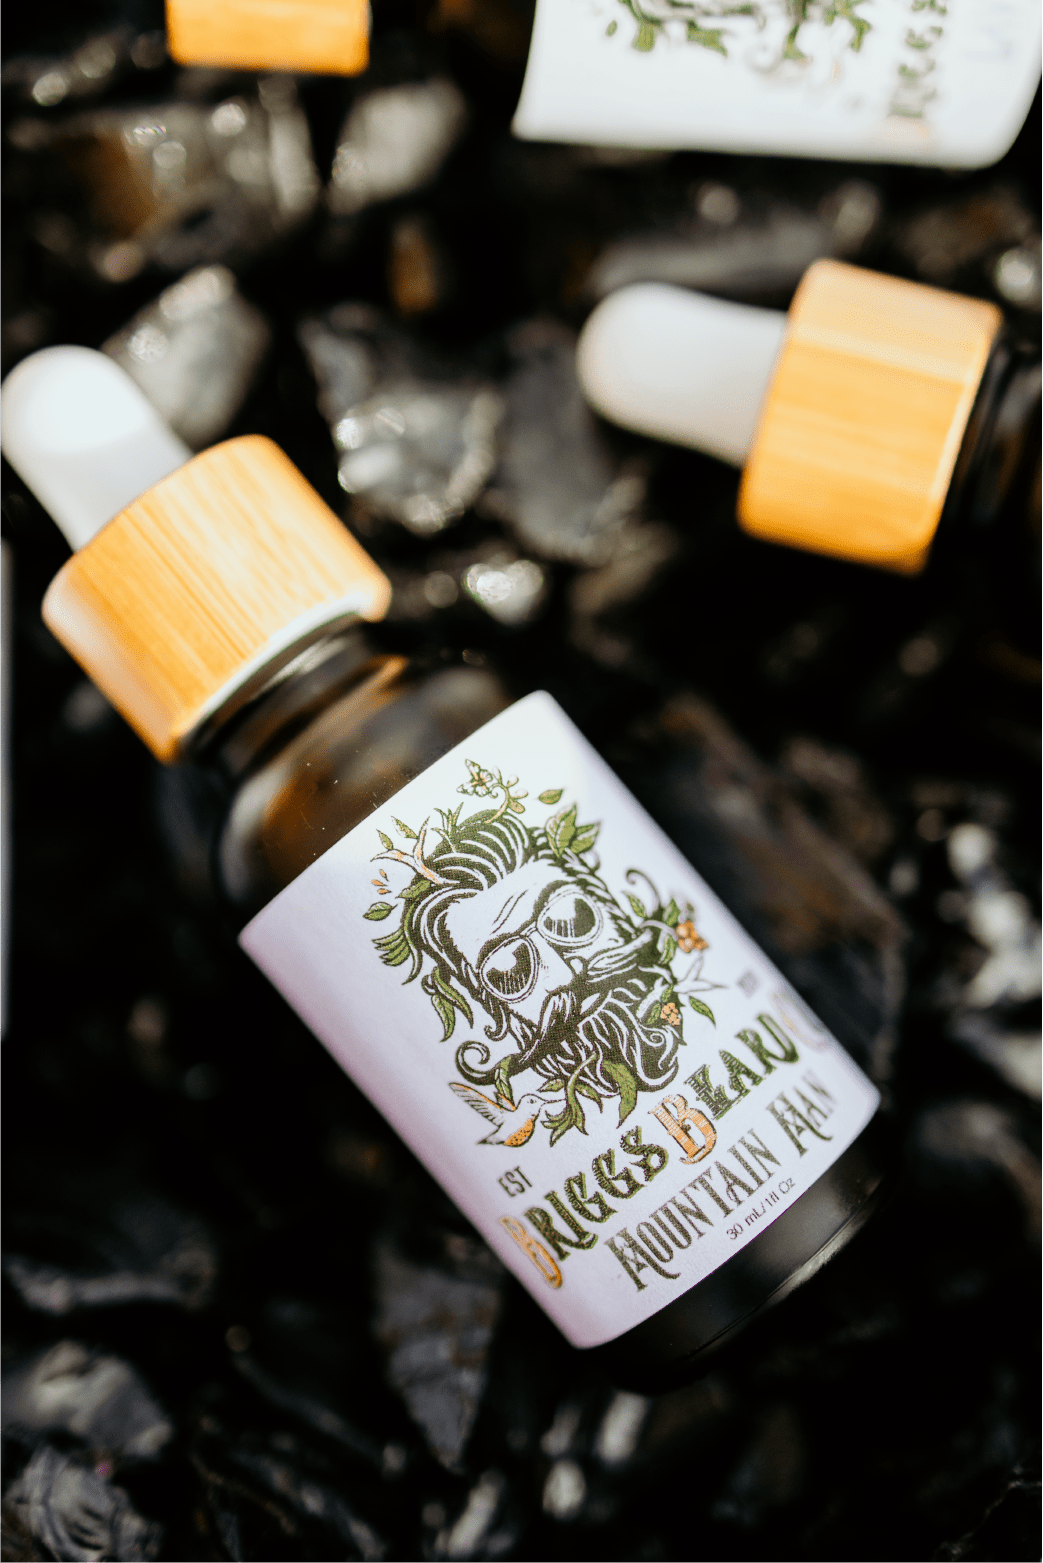 Mountain man beard oil lying in black stones